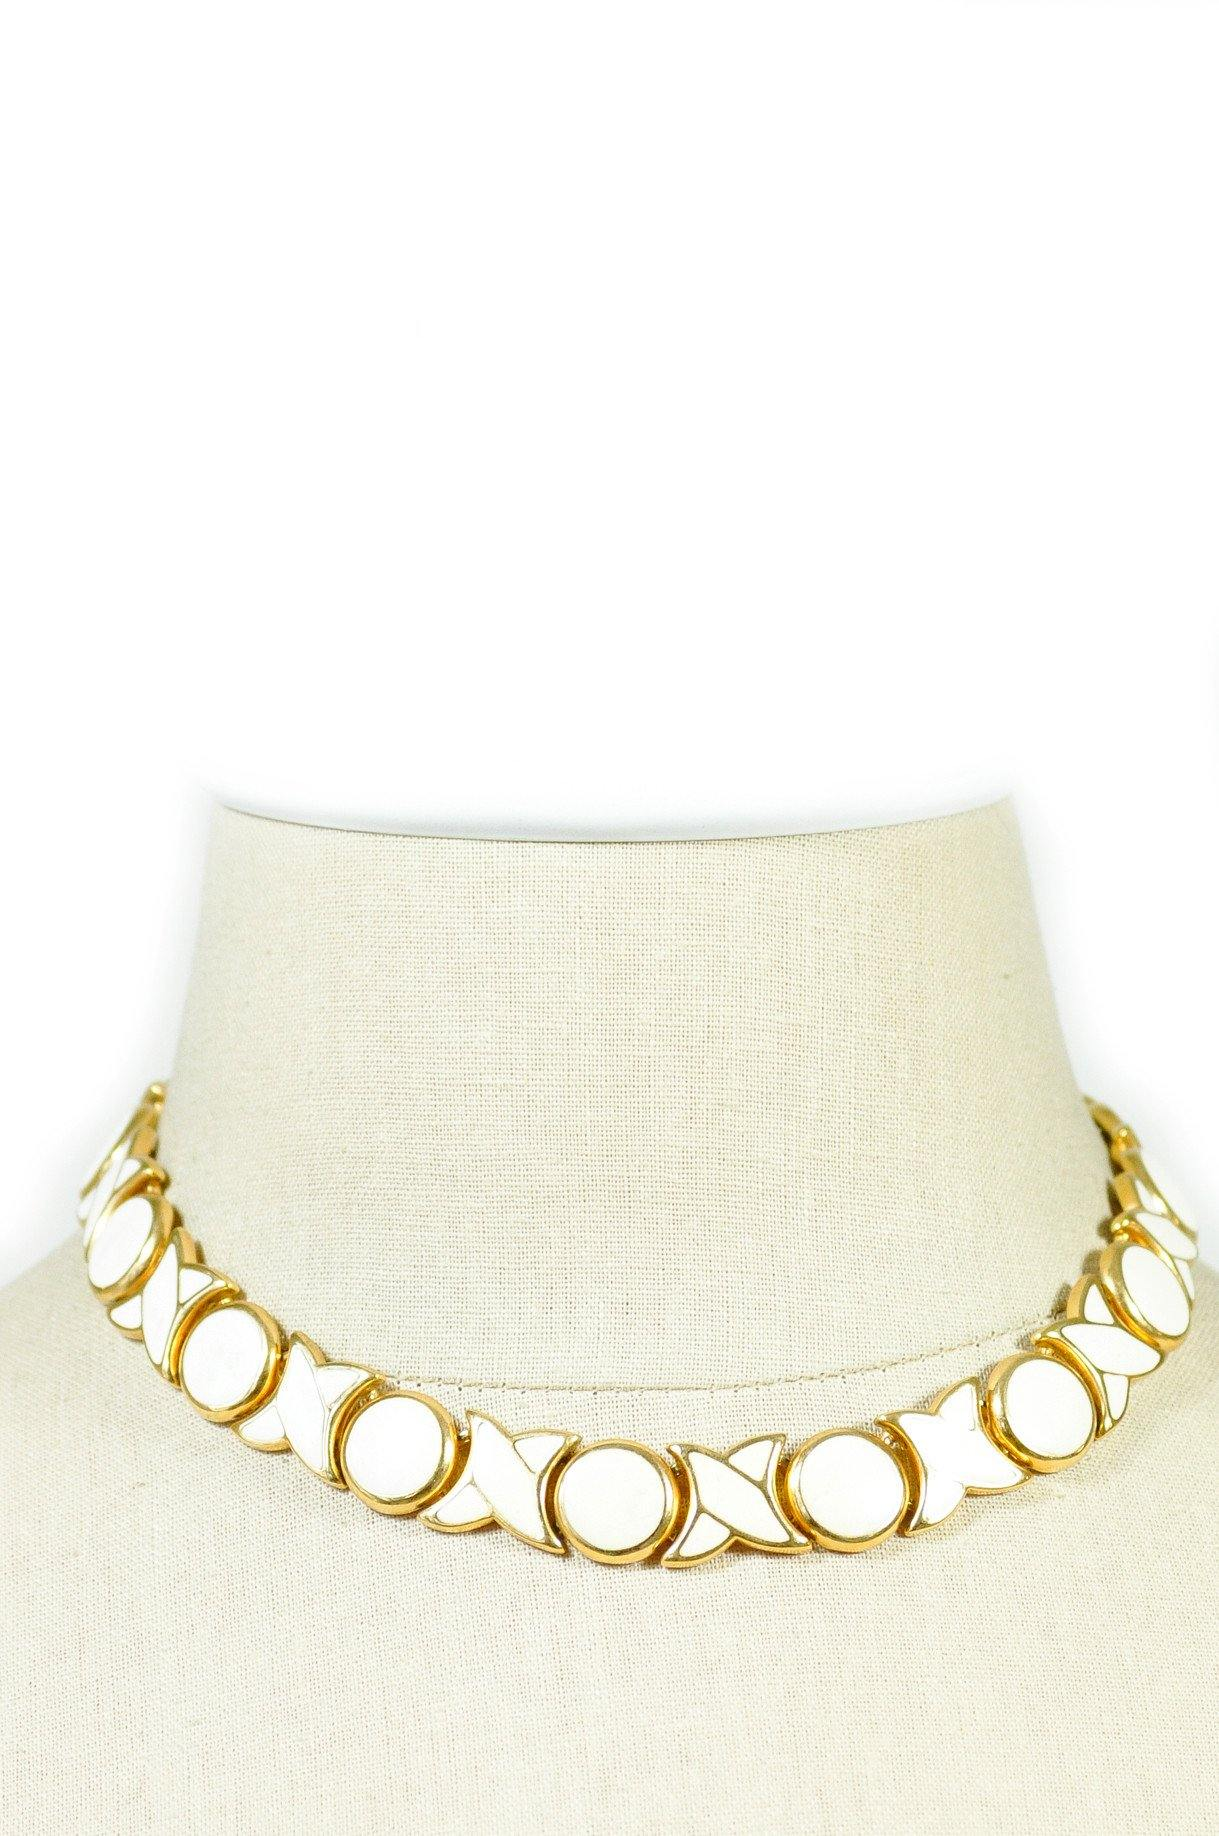 80's__Napier__Enameled Choker Necklace